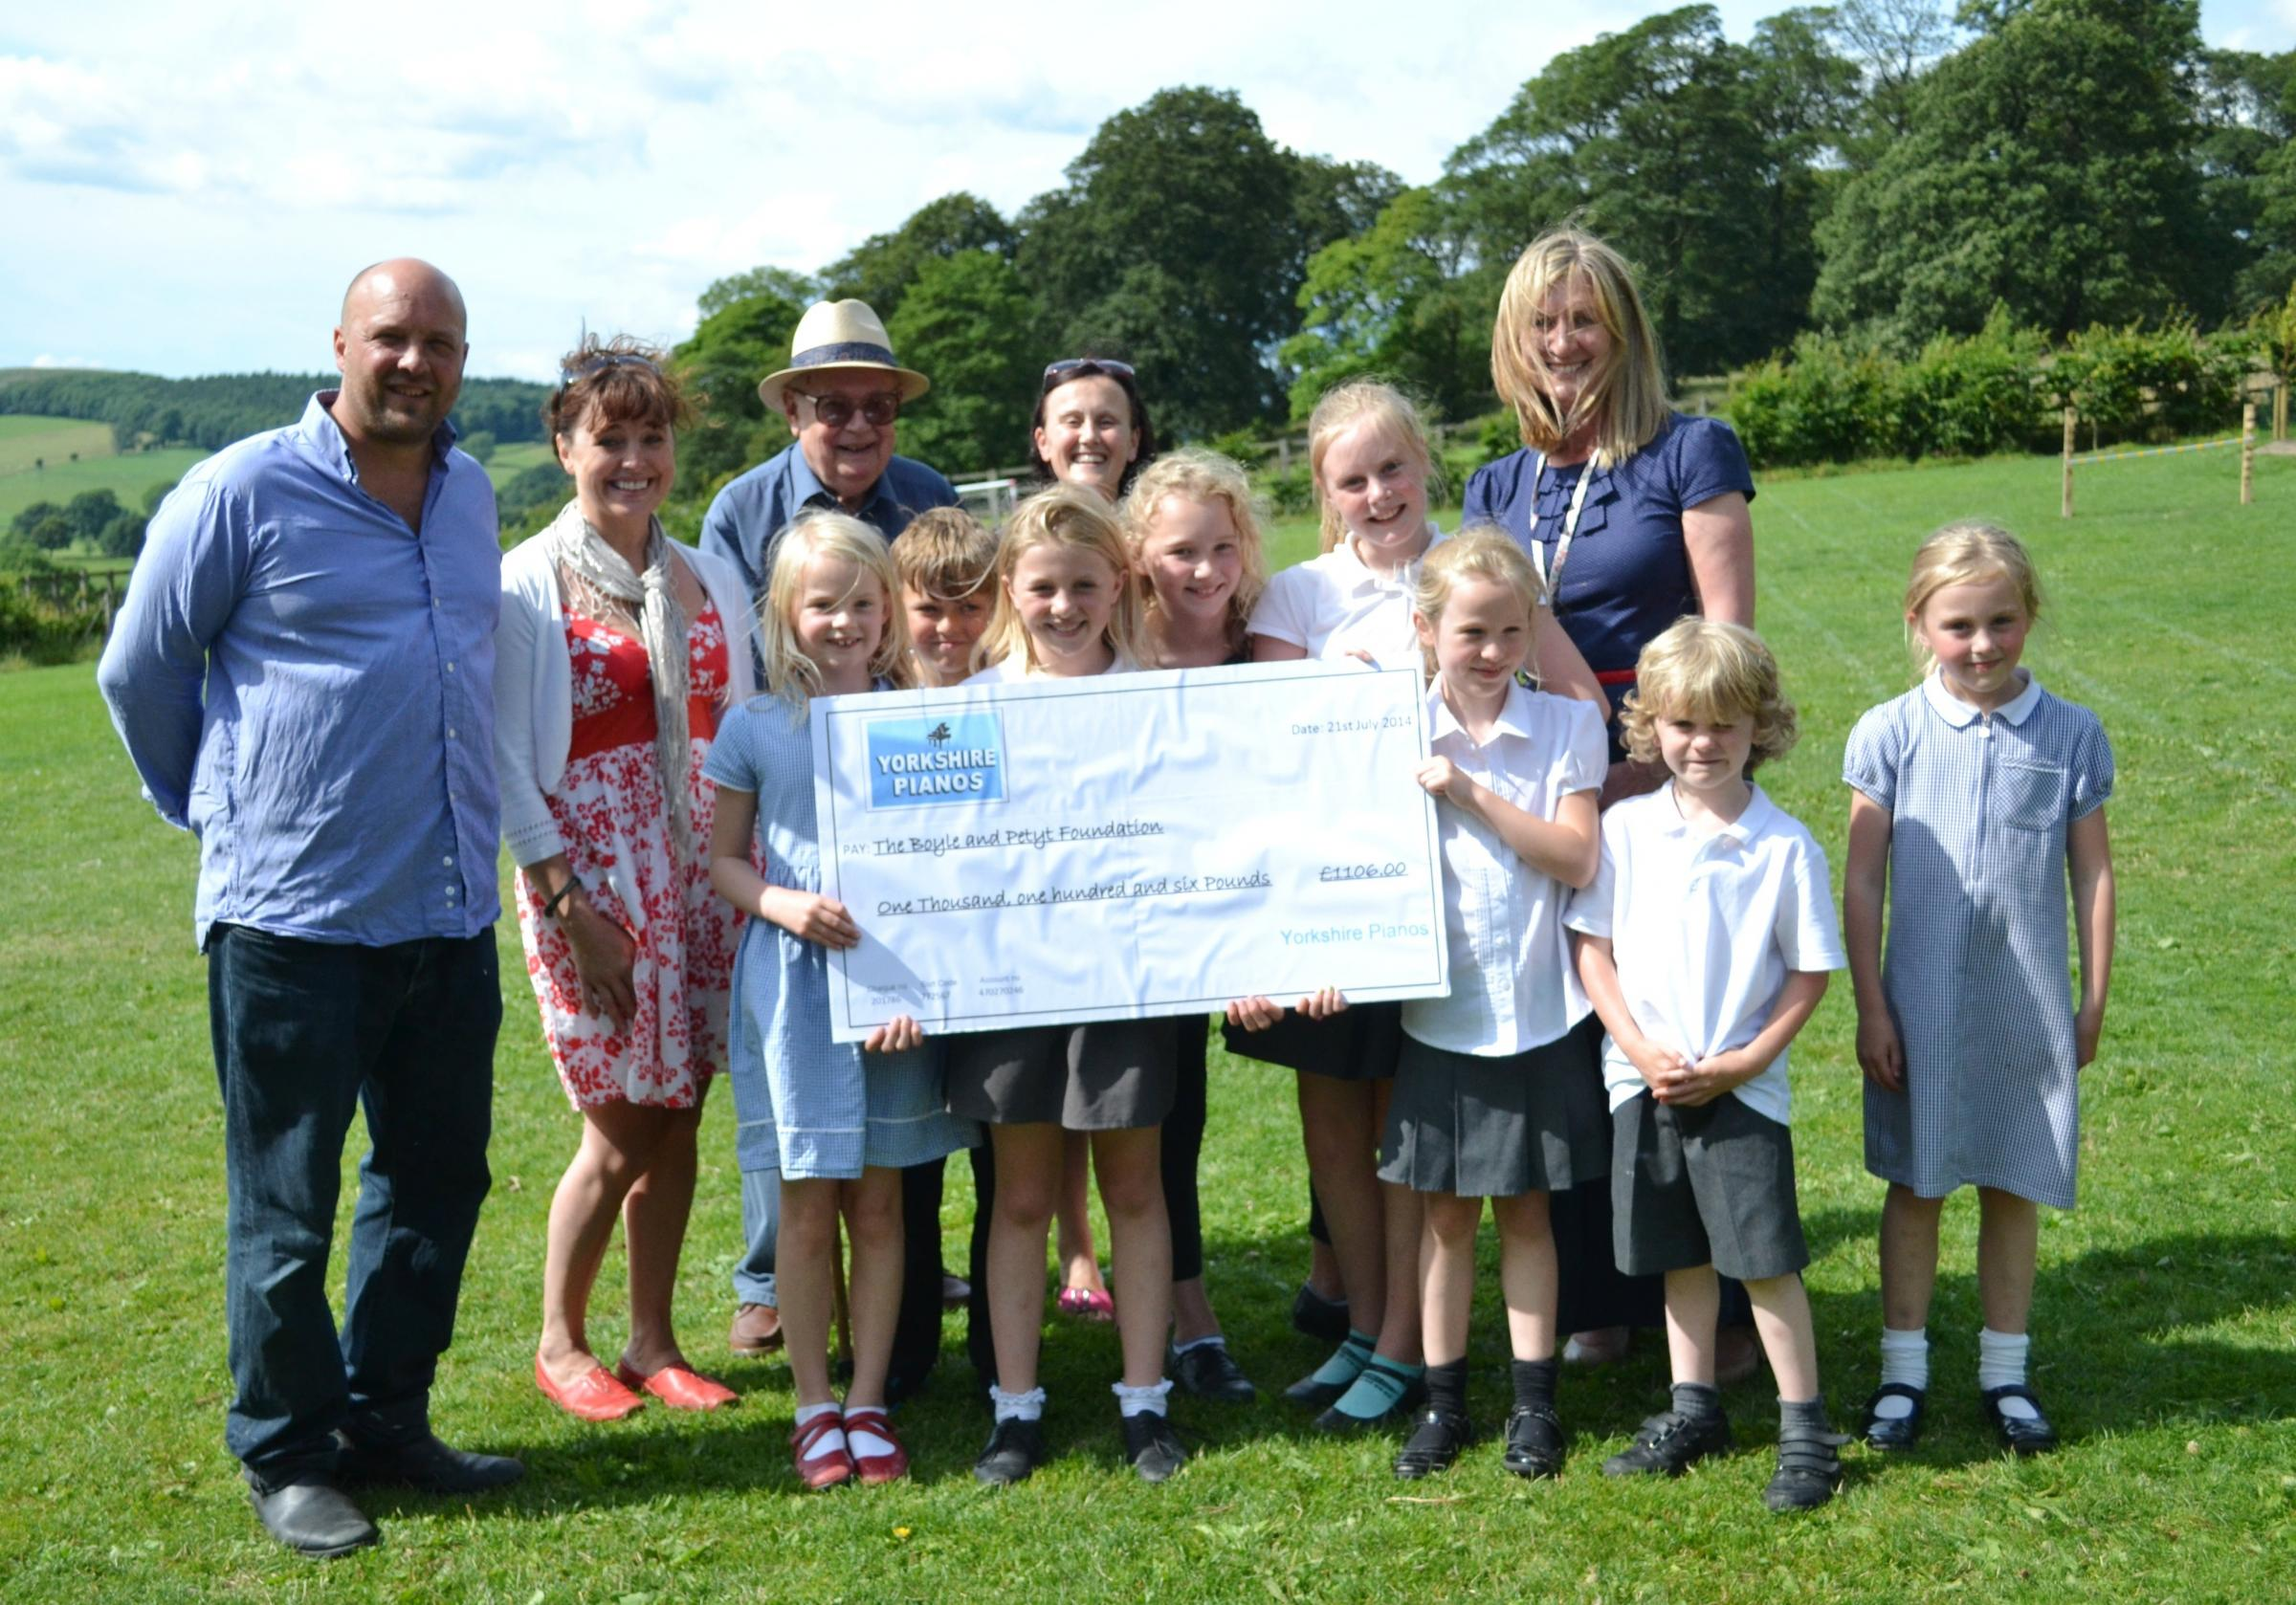 Parents and children from Beamsley's Boyle and Petyt School receive a cheque from Adam Cox of Yorkshire Pianos (on the far left), foundation governor Colin Crabtree and headteacher Imogen Addy